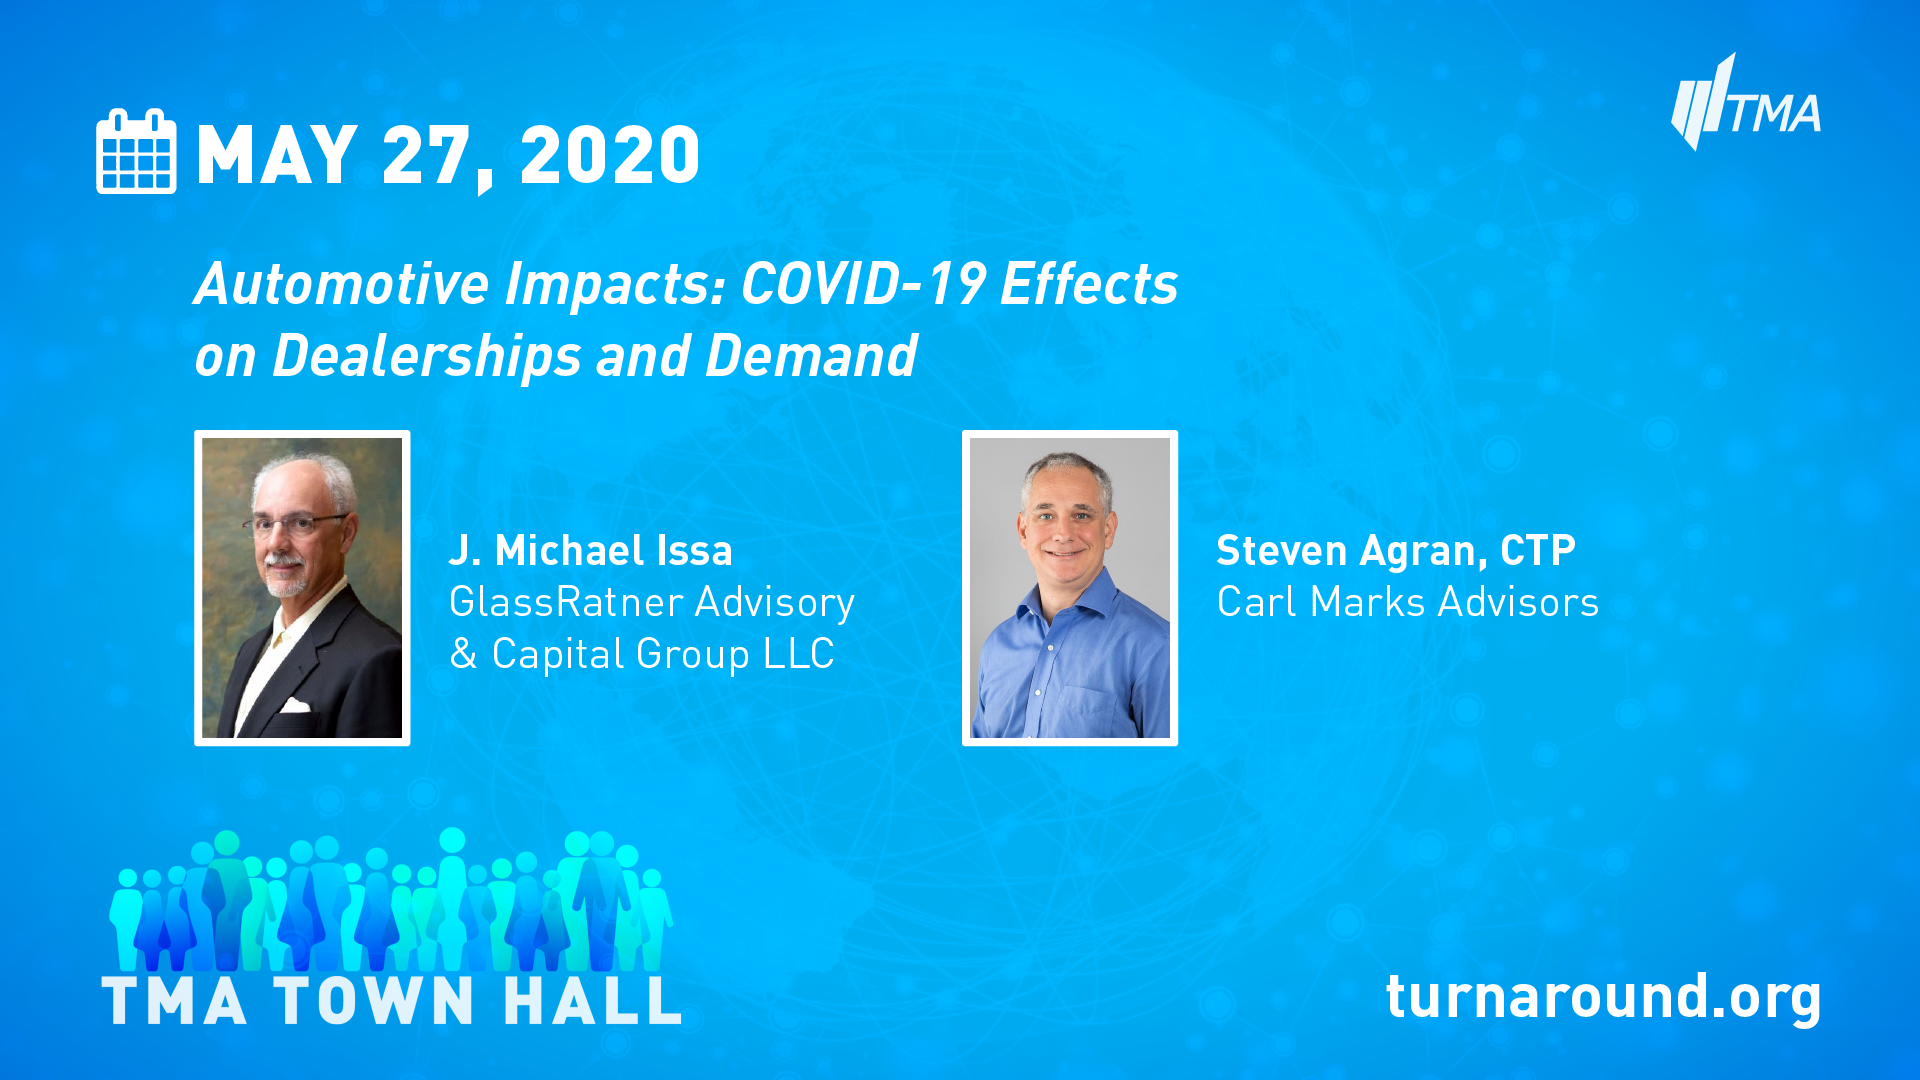 TMA Town Hall for May 27, 2020